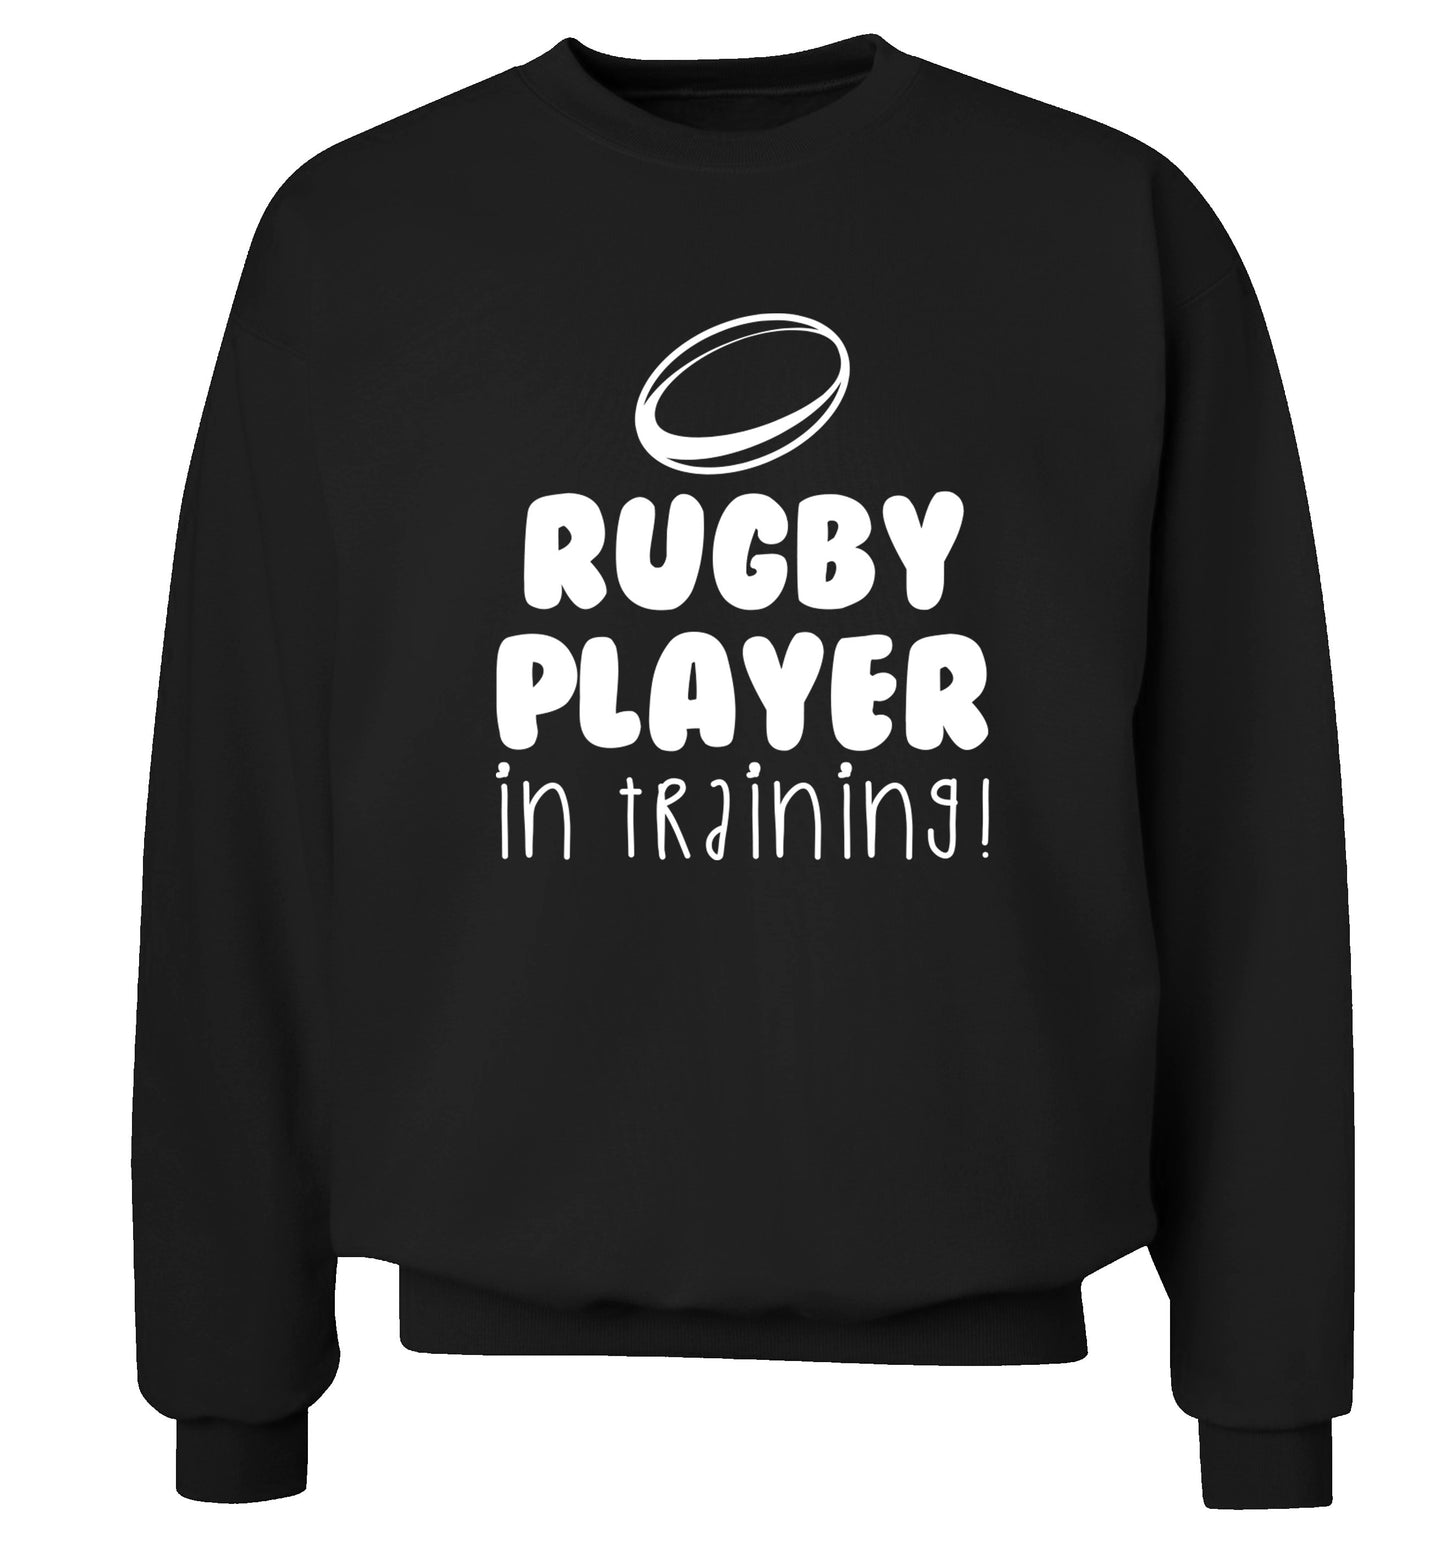 Rugby player in training Adult's unisex black Sweater 2XL